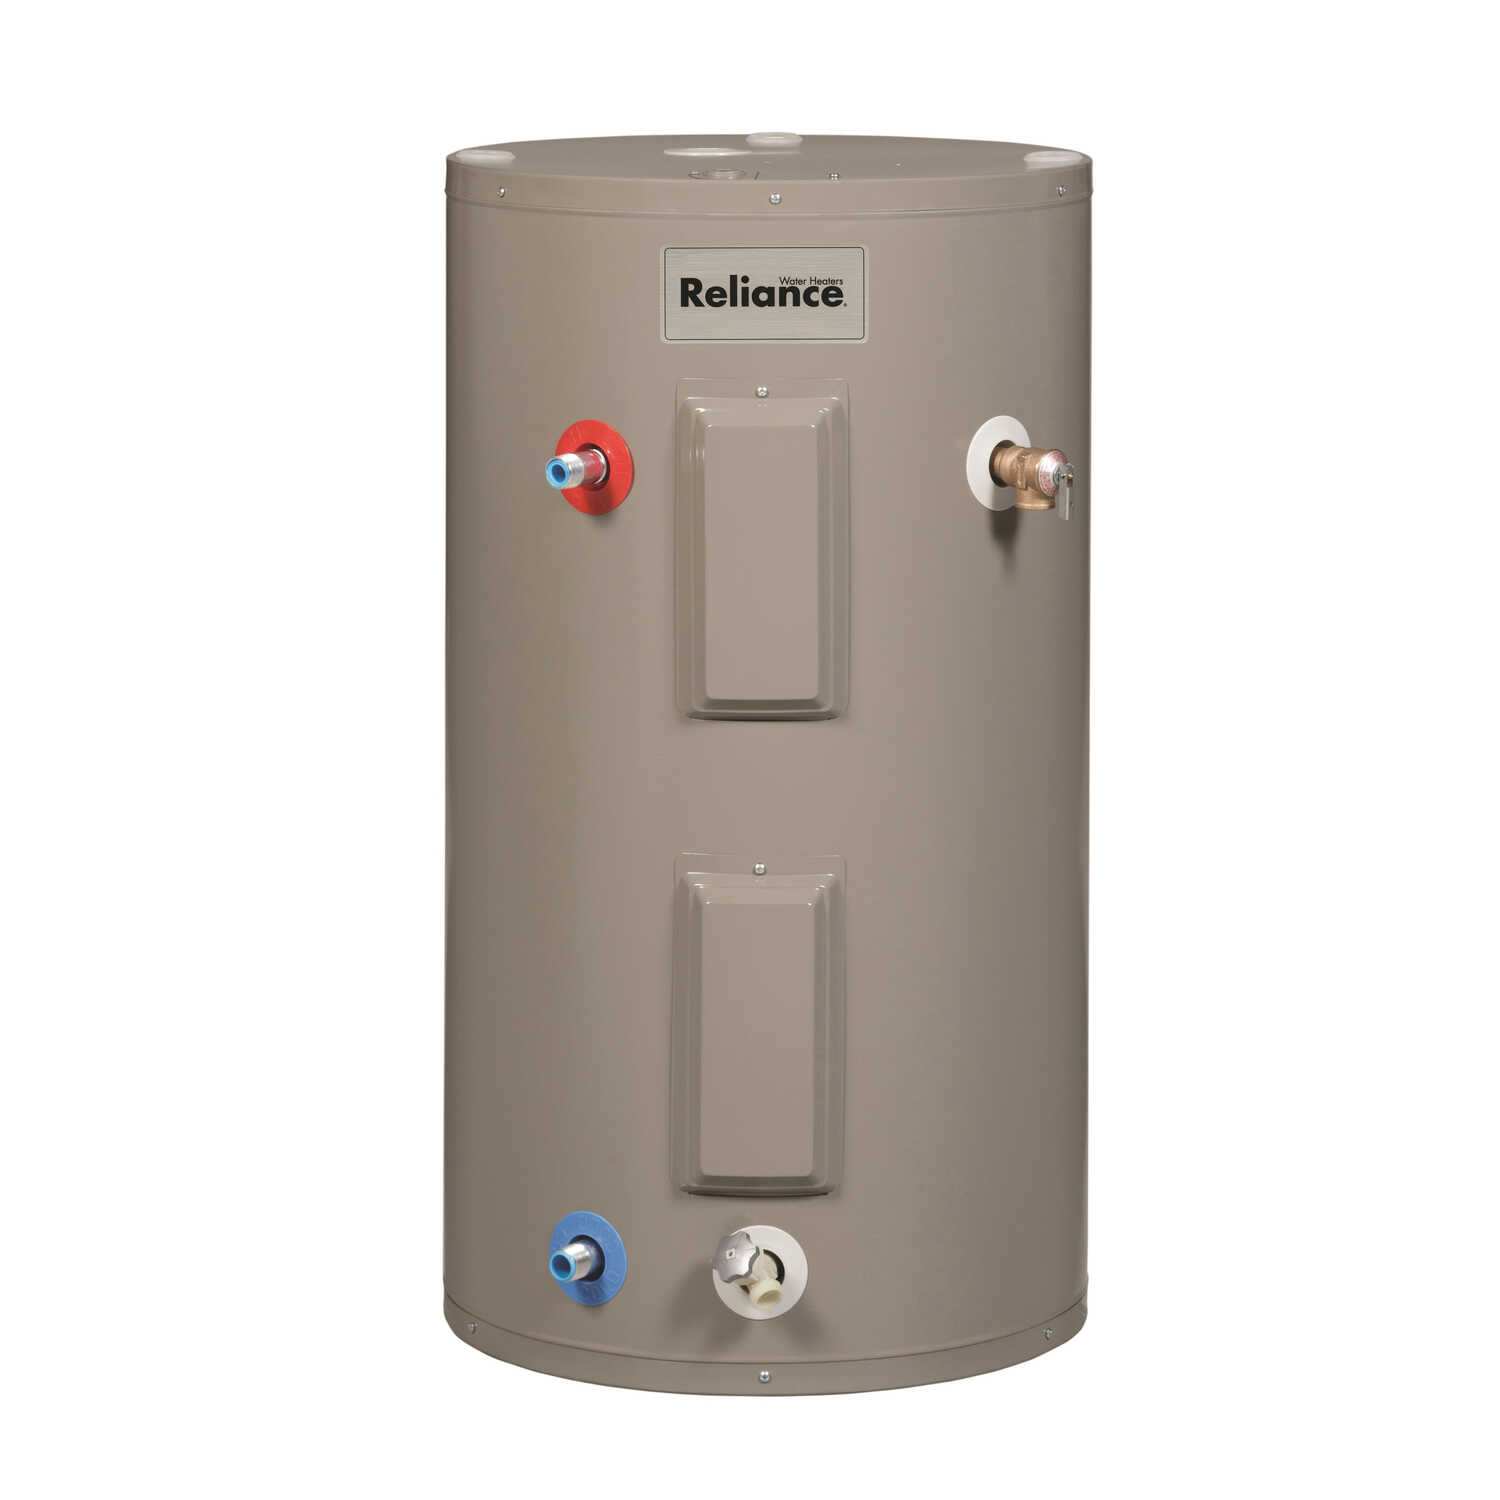 Reliance  Mobile Home Water Heater  Electric  30 gal. 39 in. H x 20 in. L x 20 in. W